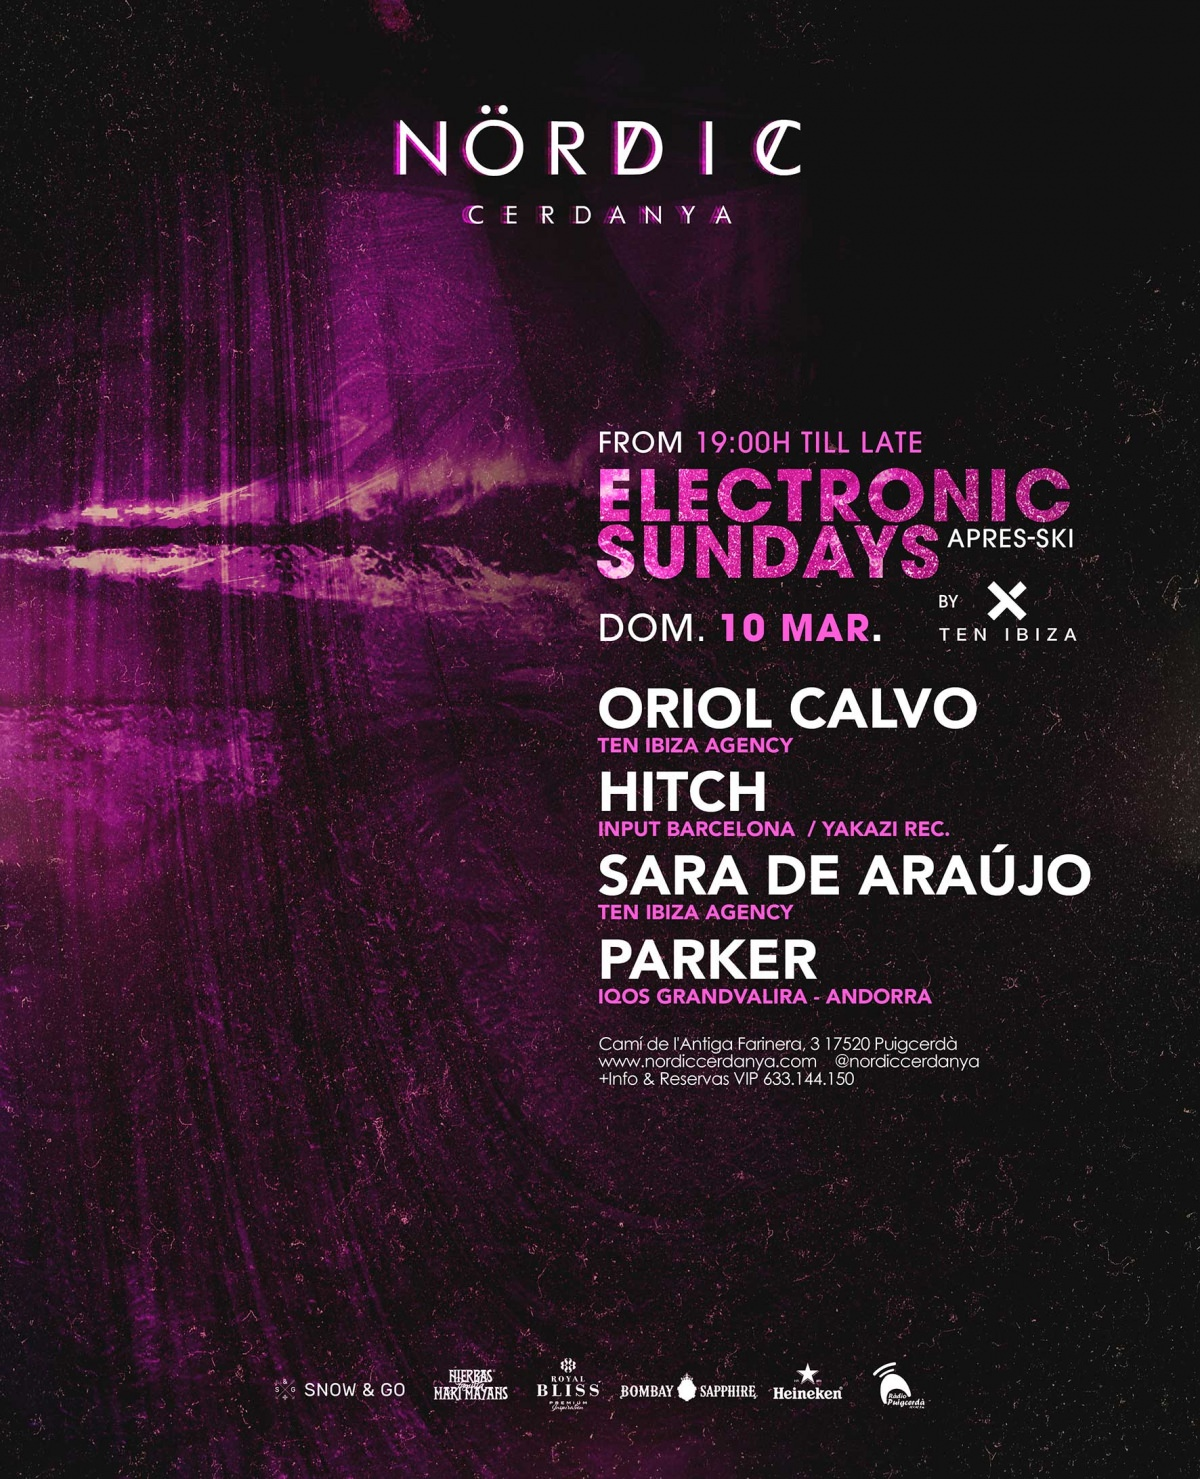 ELECTRONIC SUNDAYS apres-ski at NORDIC Cerdanya